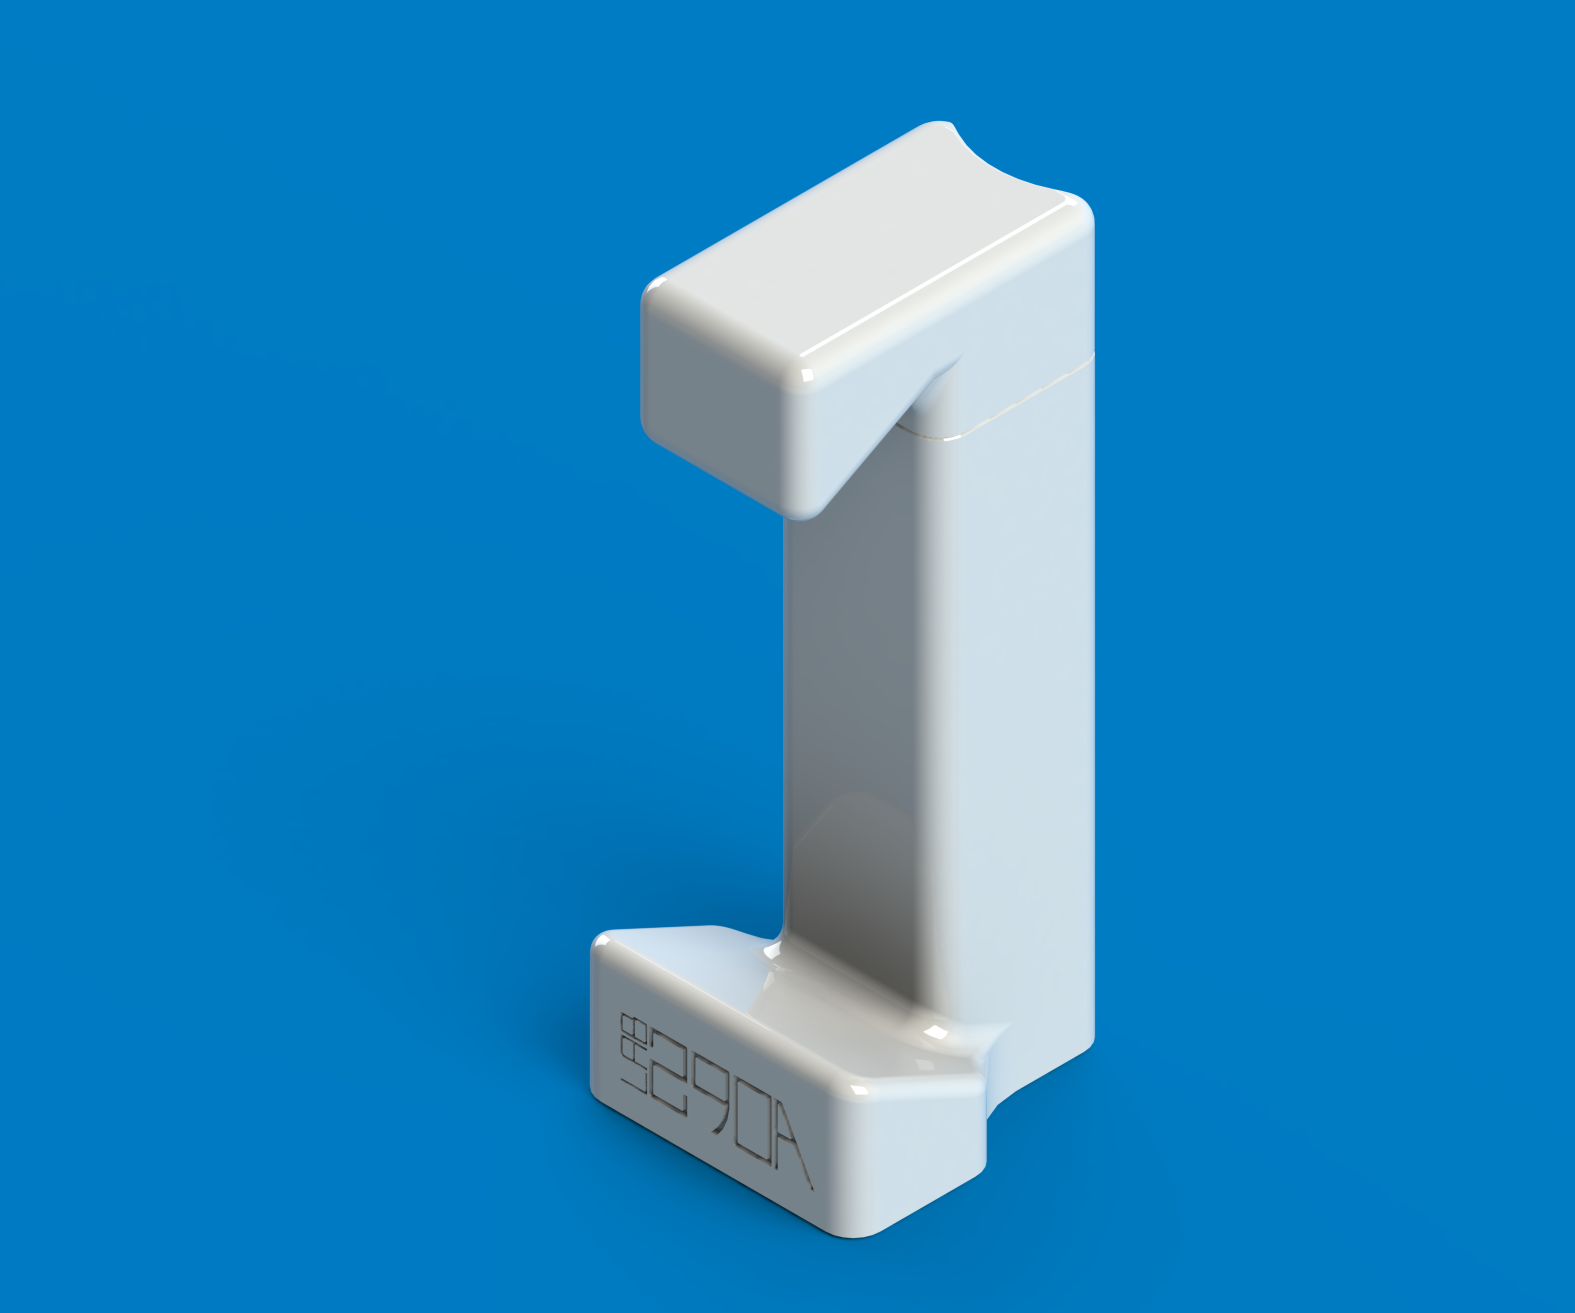 A Custom 3D Printed Adjustable Tripod Adapter for your Smartphone